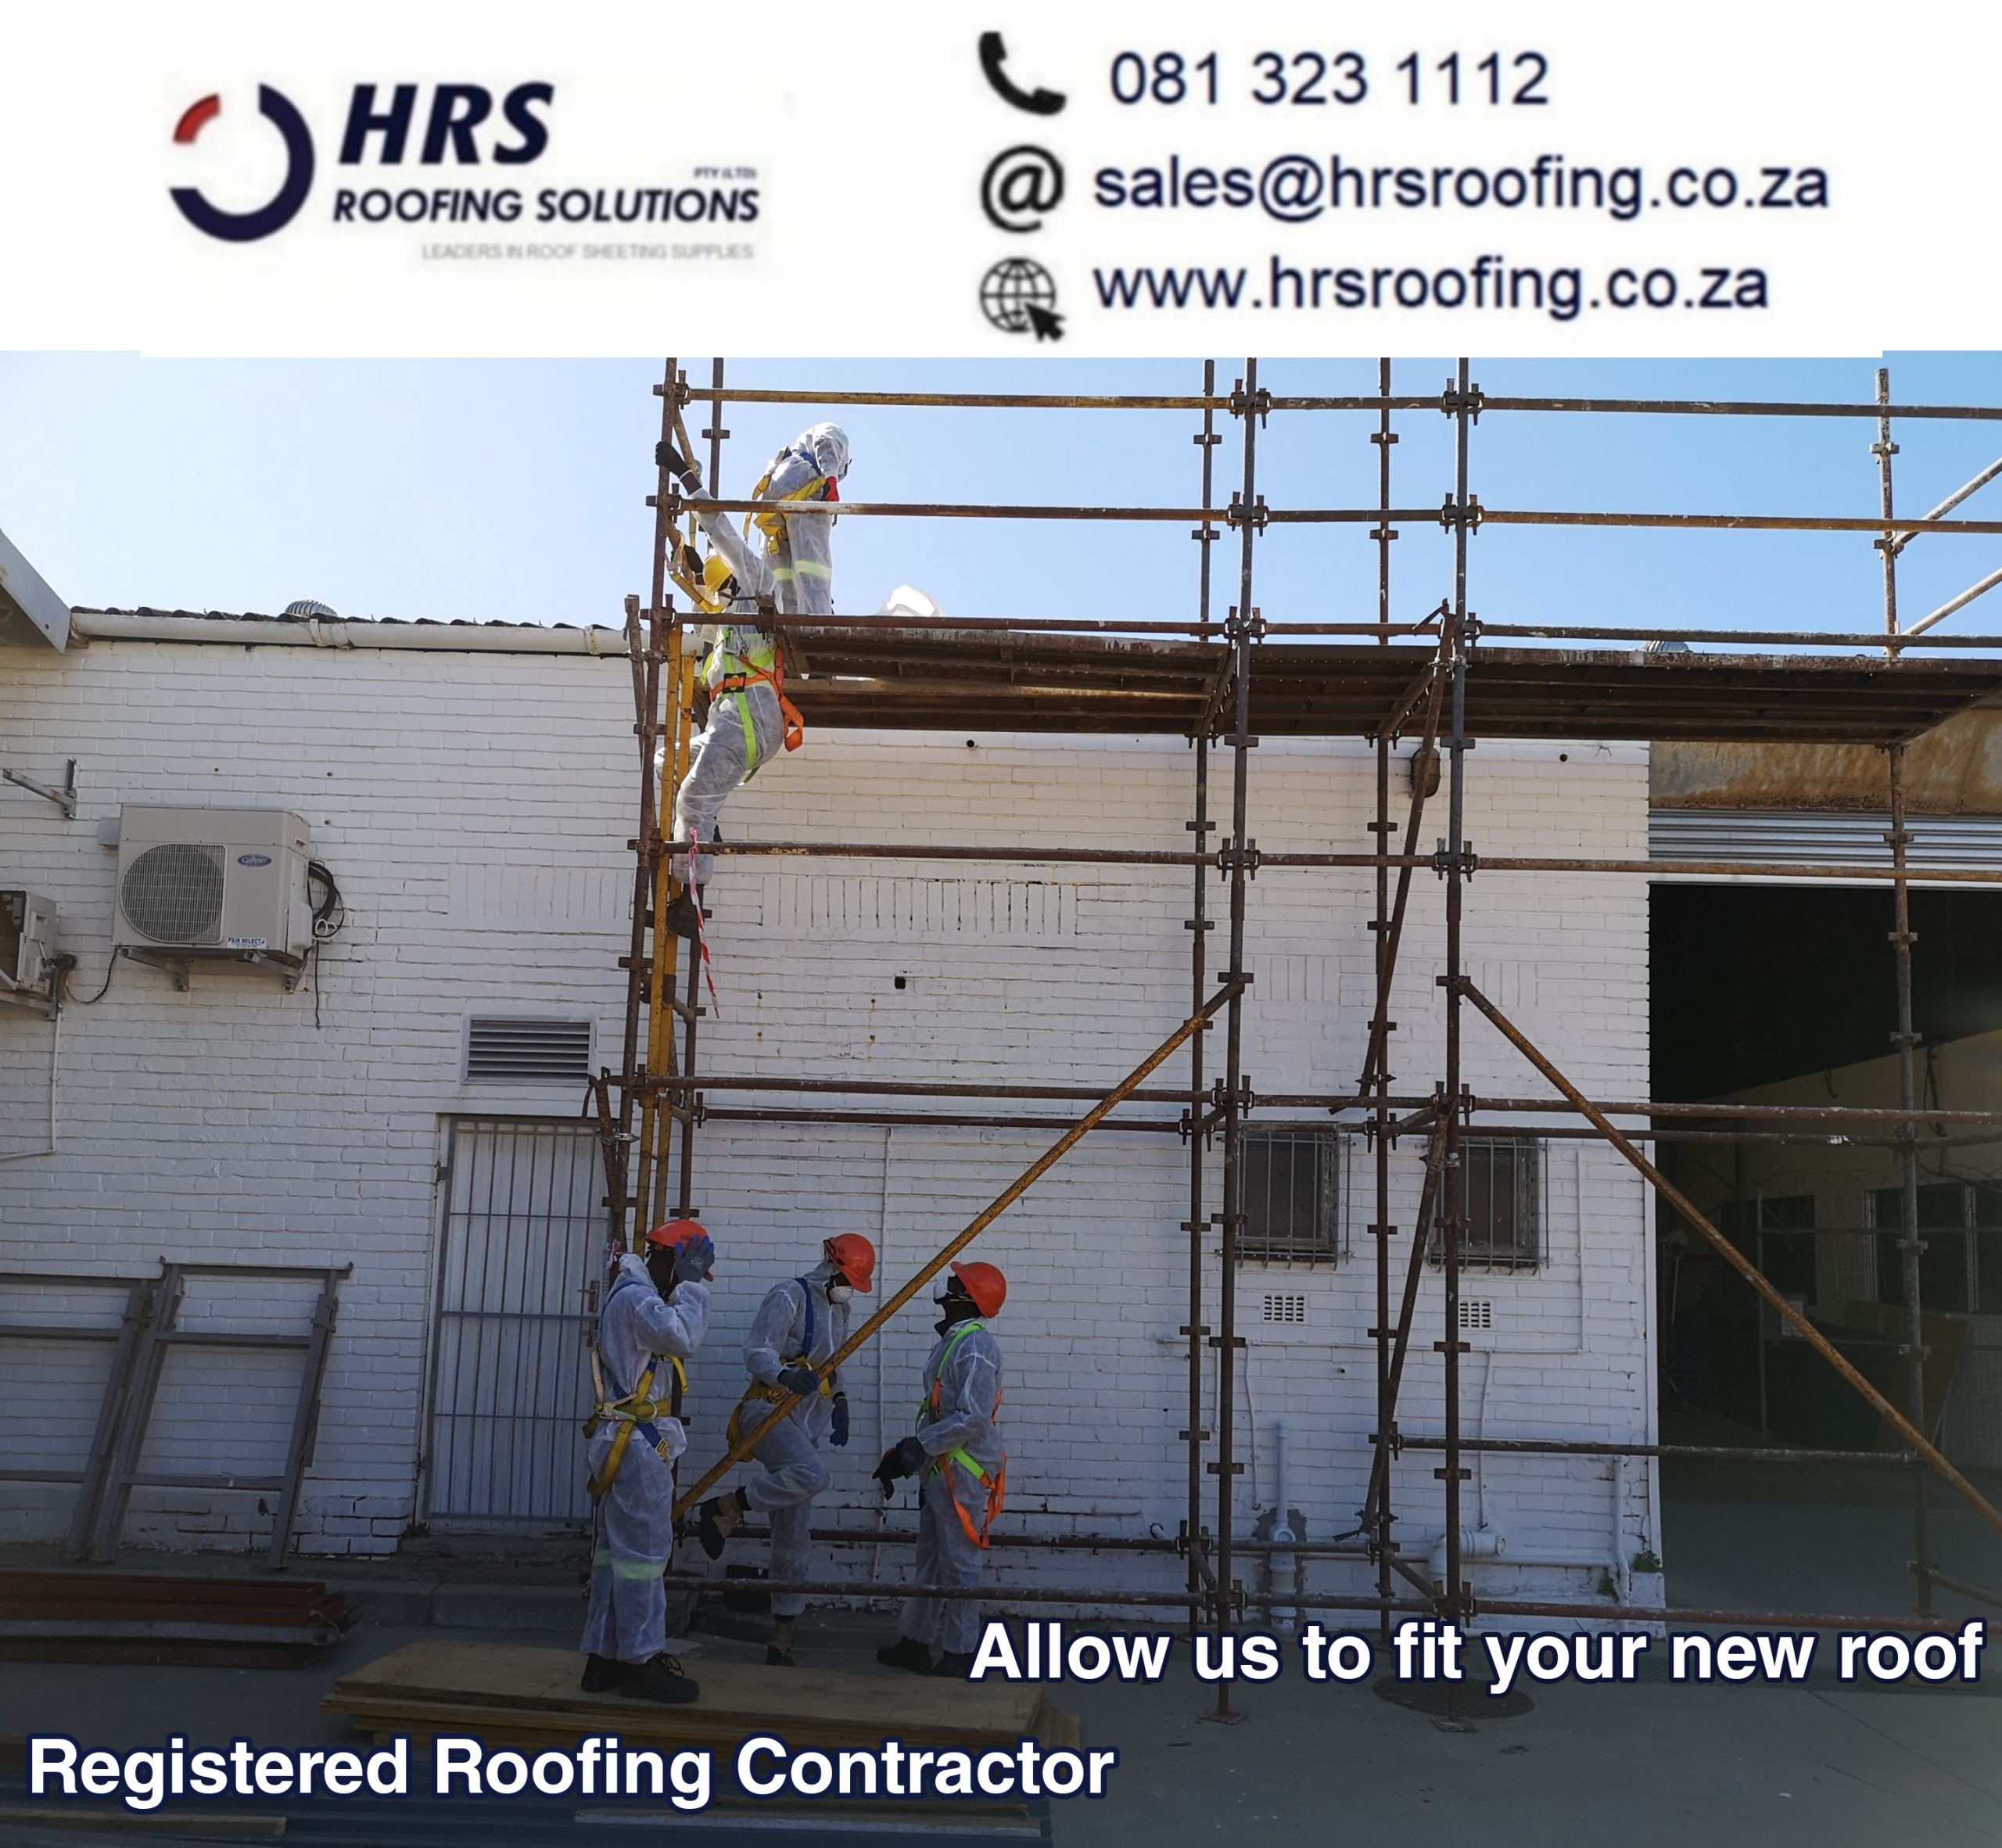 registered Asbestos Contractor hrs roofing solutions cape Town